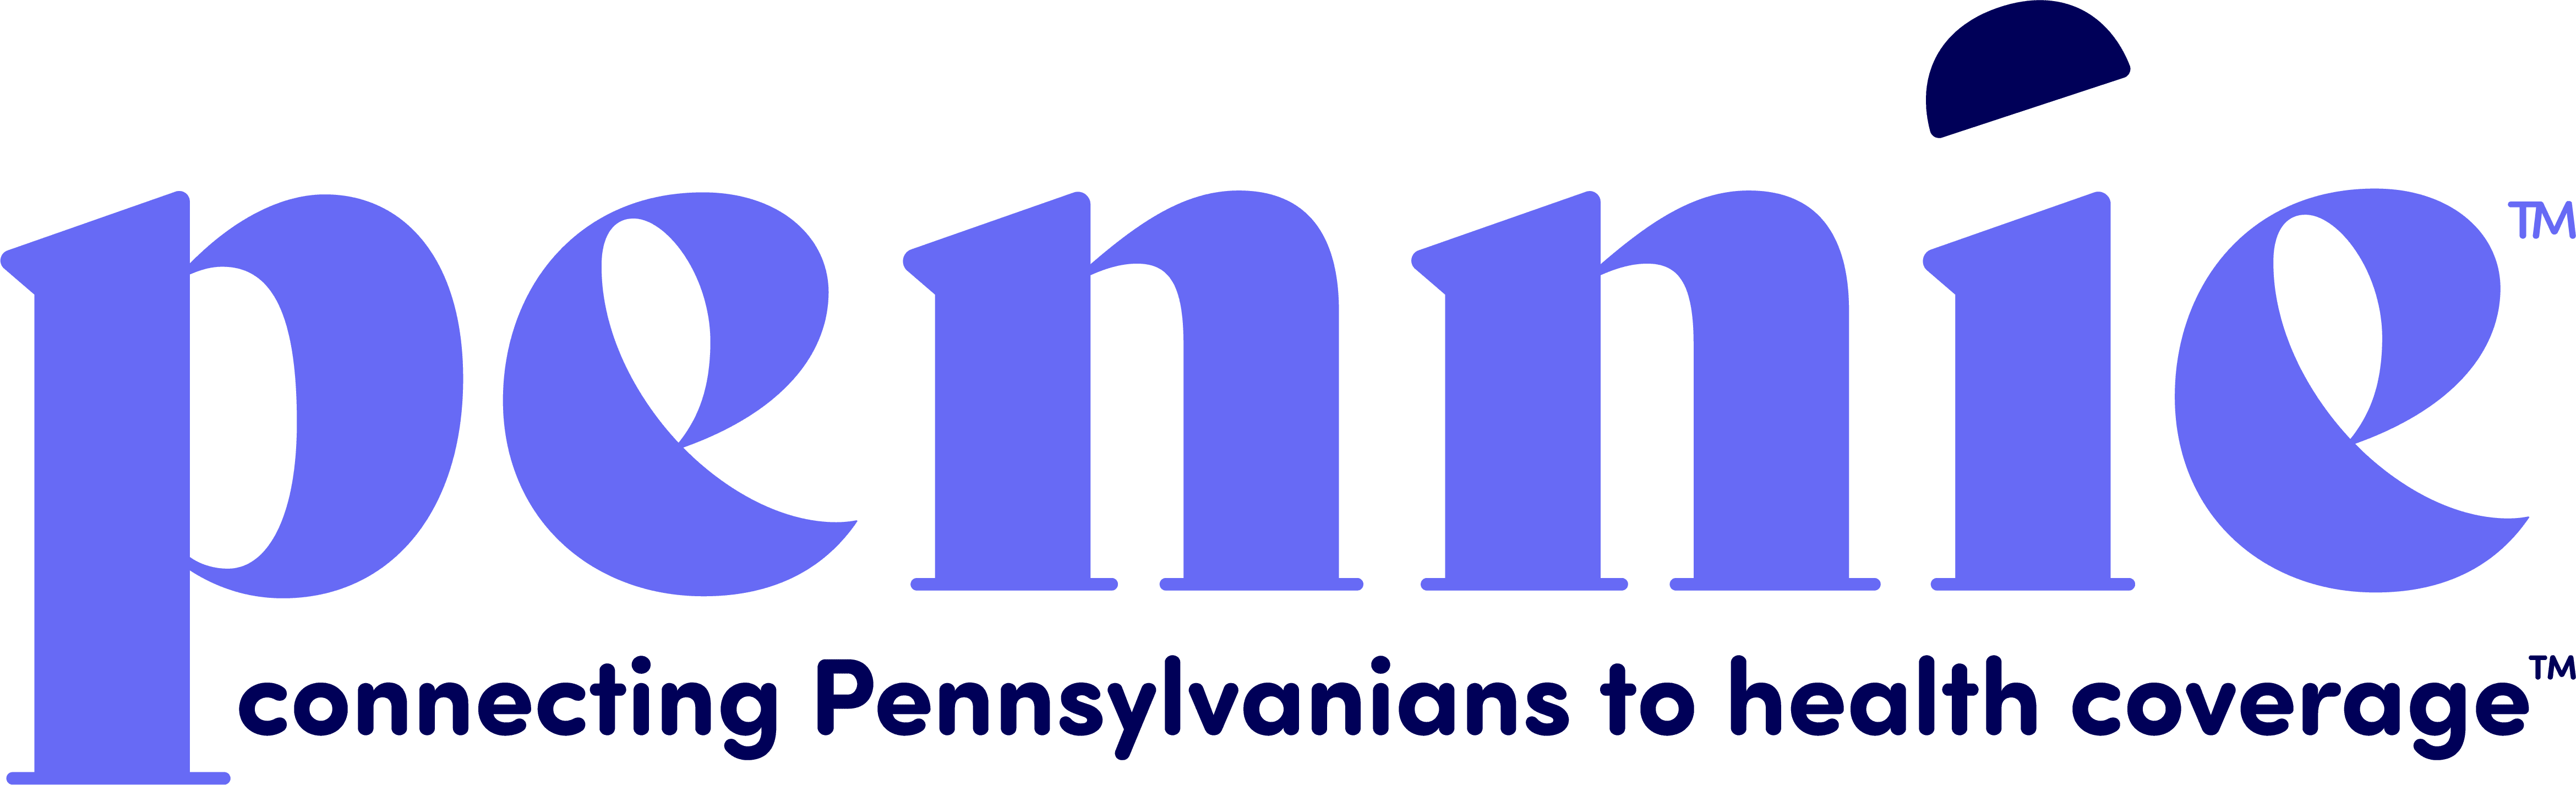 """Pennie logo stating, """"connecting Pennsylvanians to health coverage."""""""